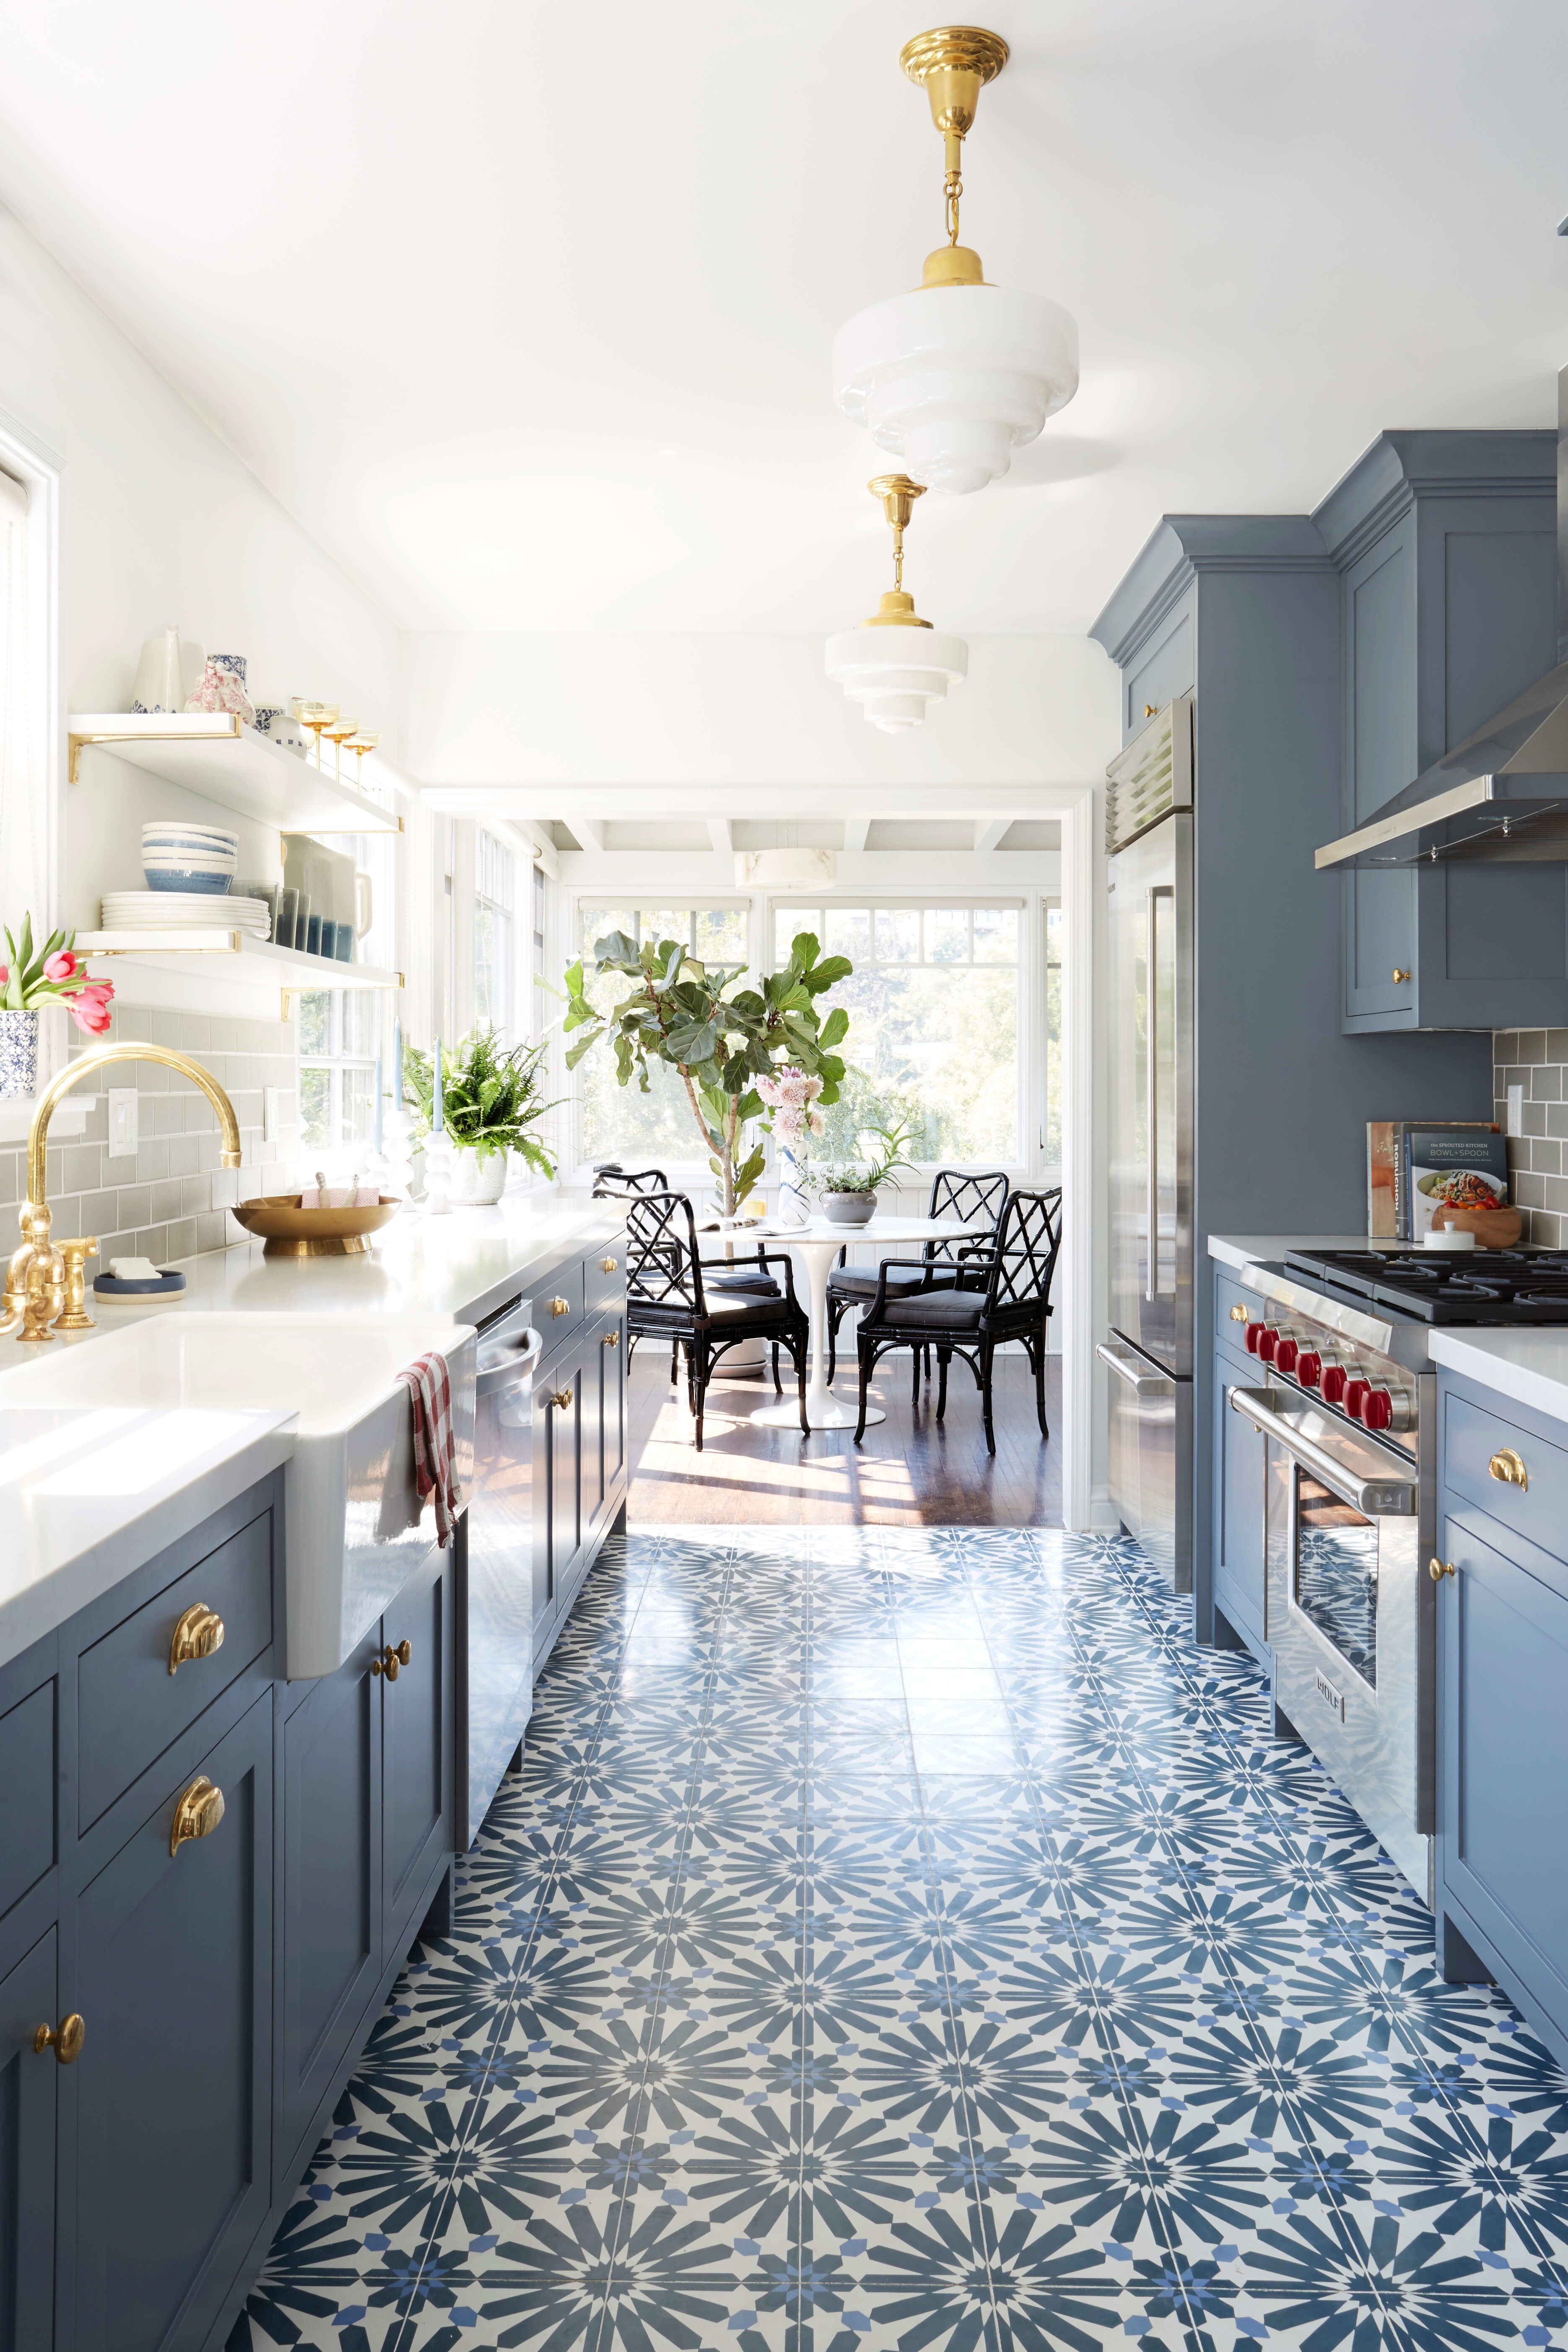 Best Kitchen Gallery: Emily Henderson's Small Space Solutions For Your Kitchen of Best Kitchen Designs on rachelxblog.com